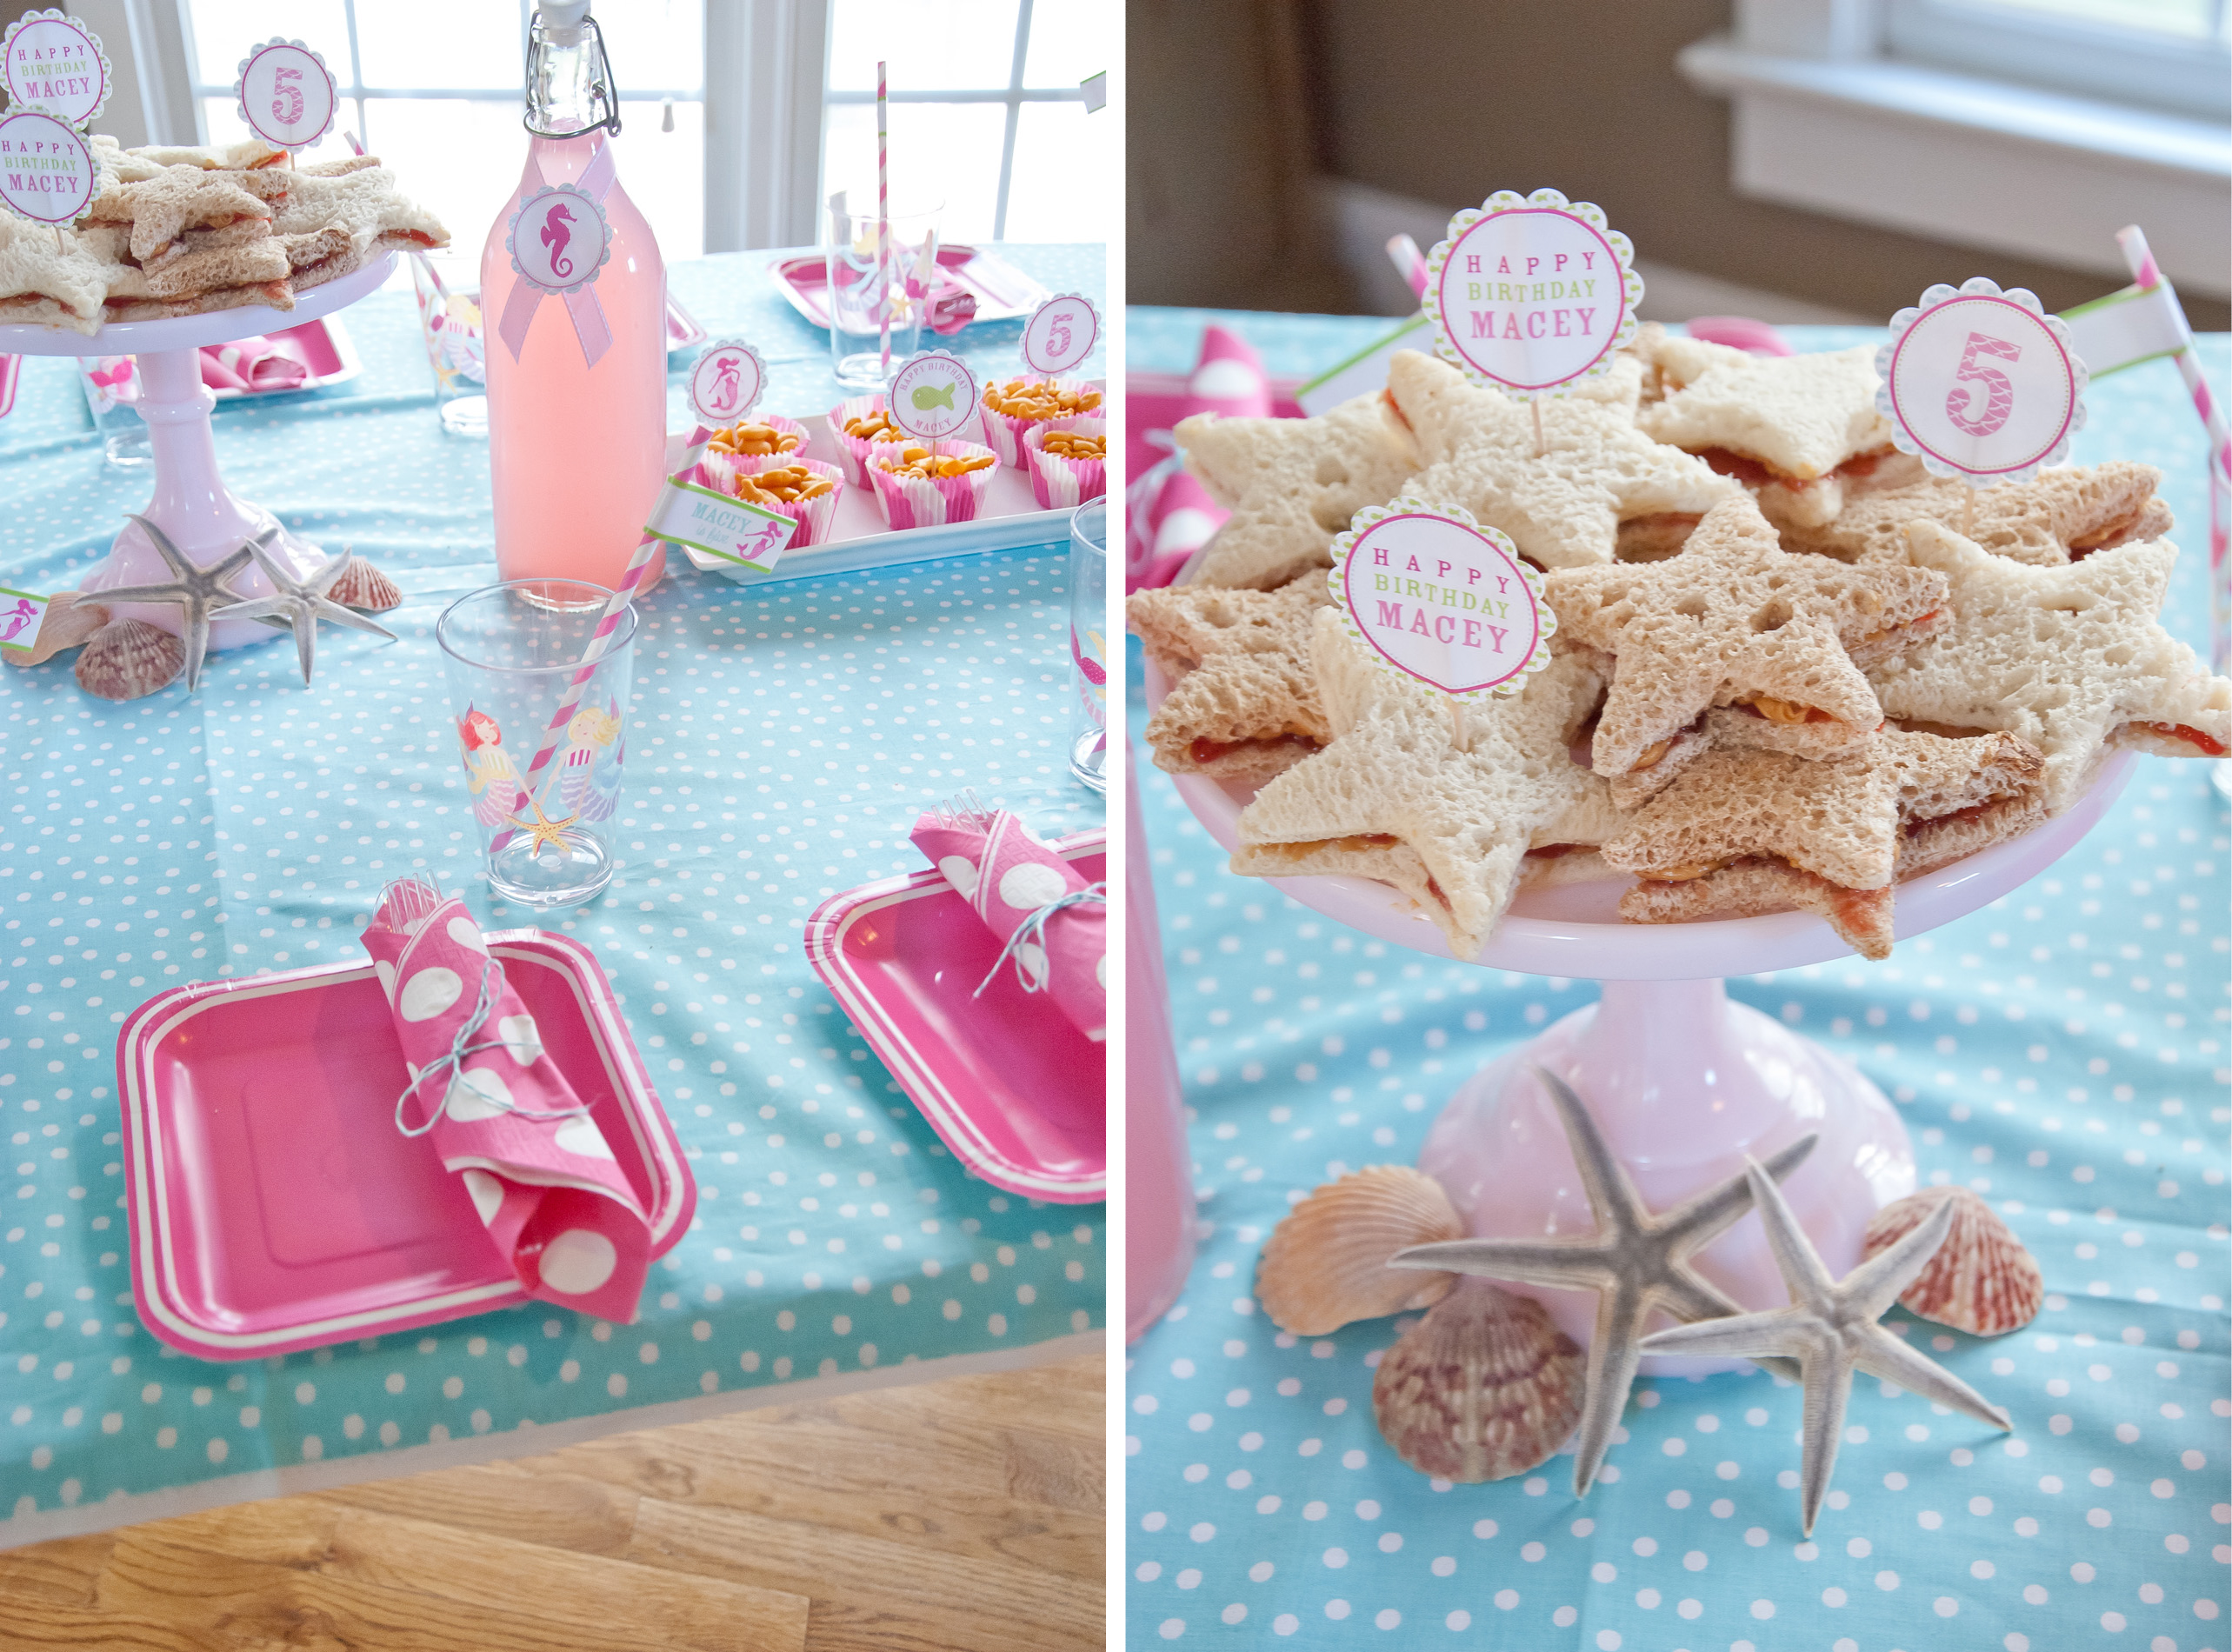 Home One Baseball Themed Birthday Party furthermore Shabby Chic Wedding California as well Butterfly Themed Baby Shower Ideas further Butterfly Themed Baby Shower Ideas likewise A Dreamy Mermaid Birthday Party. on ikea peanut table